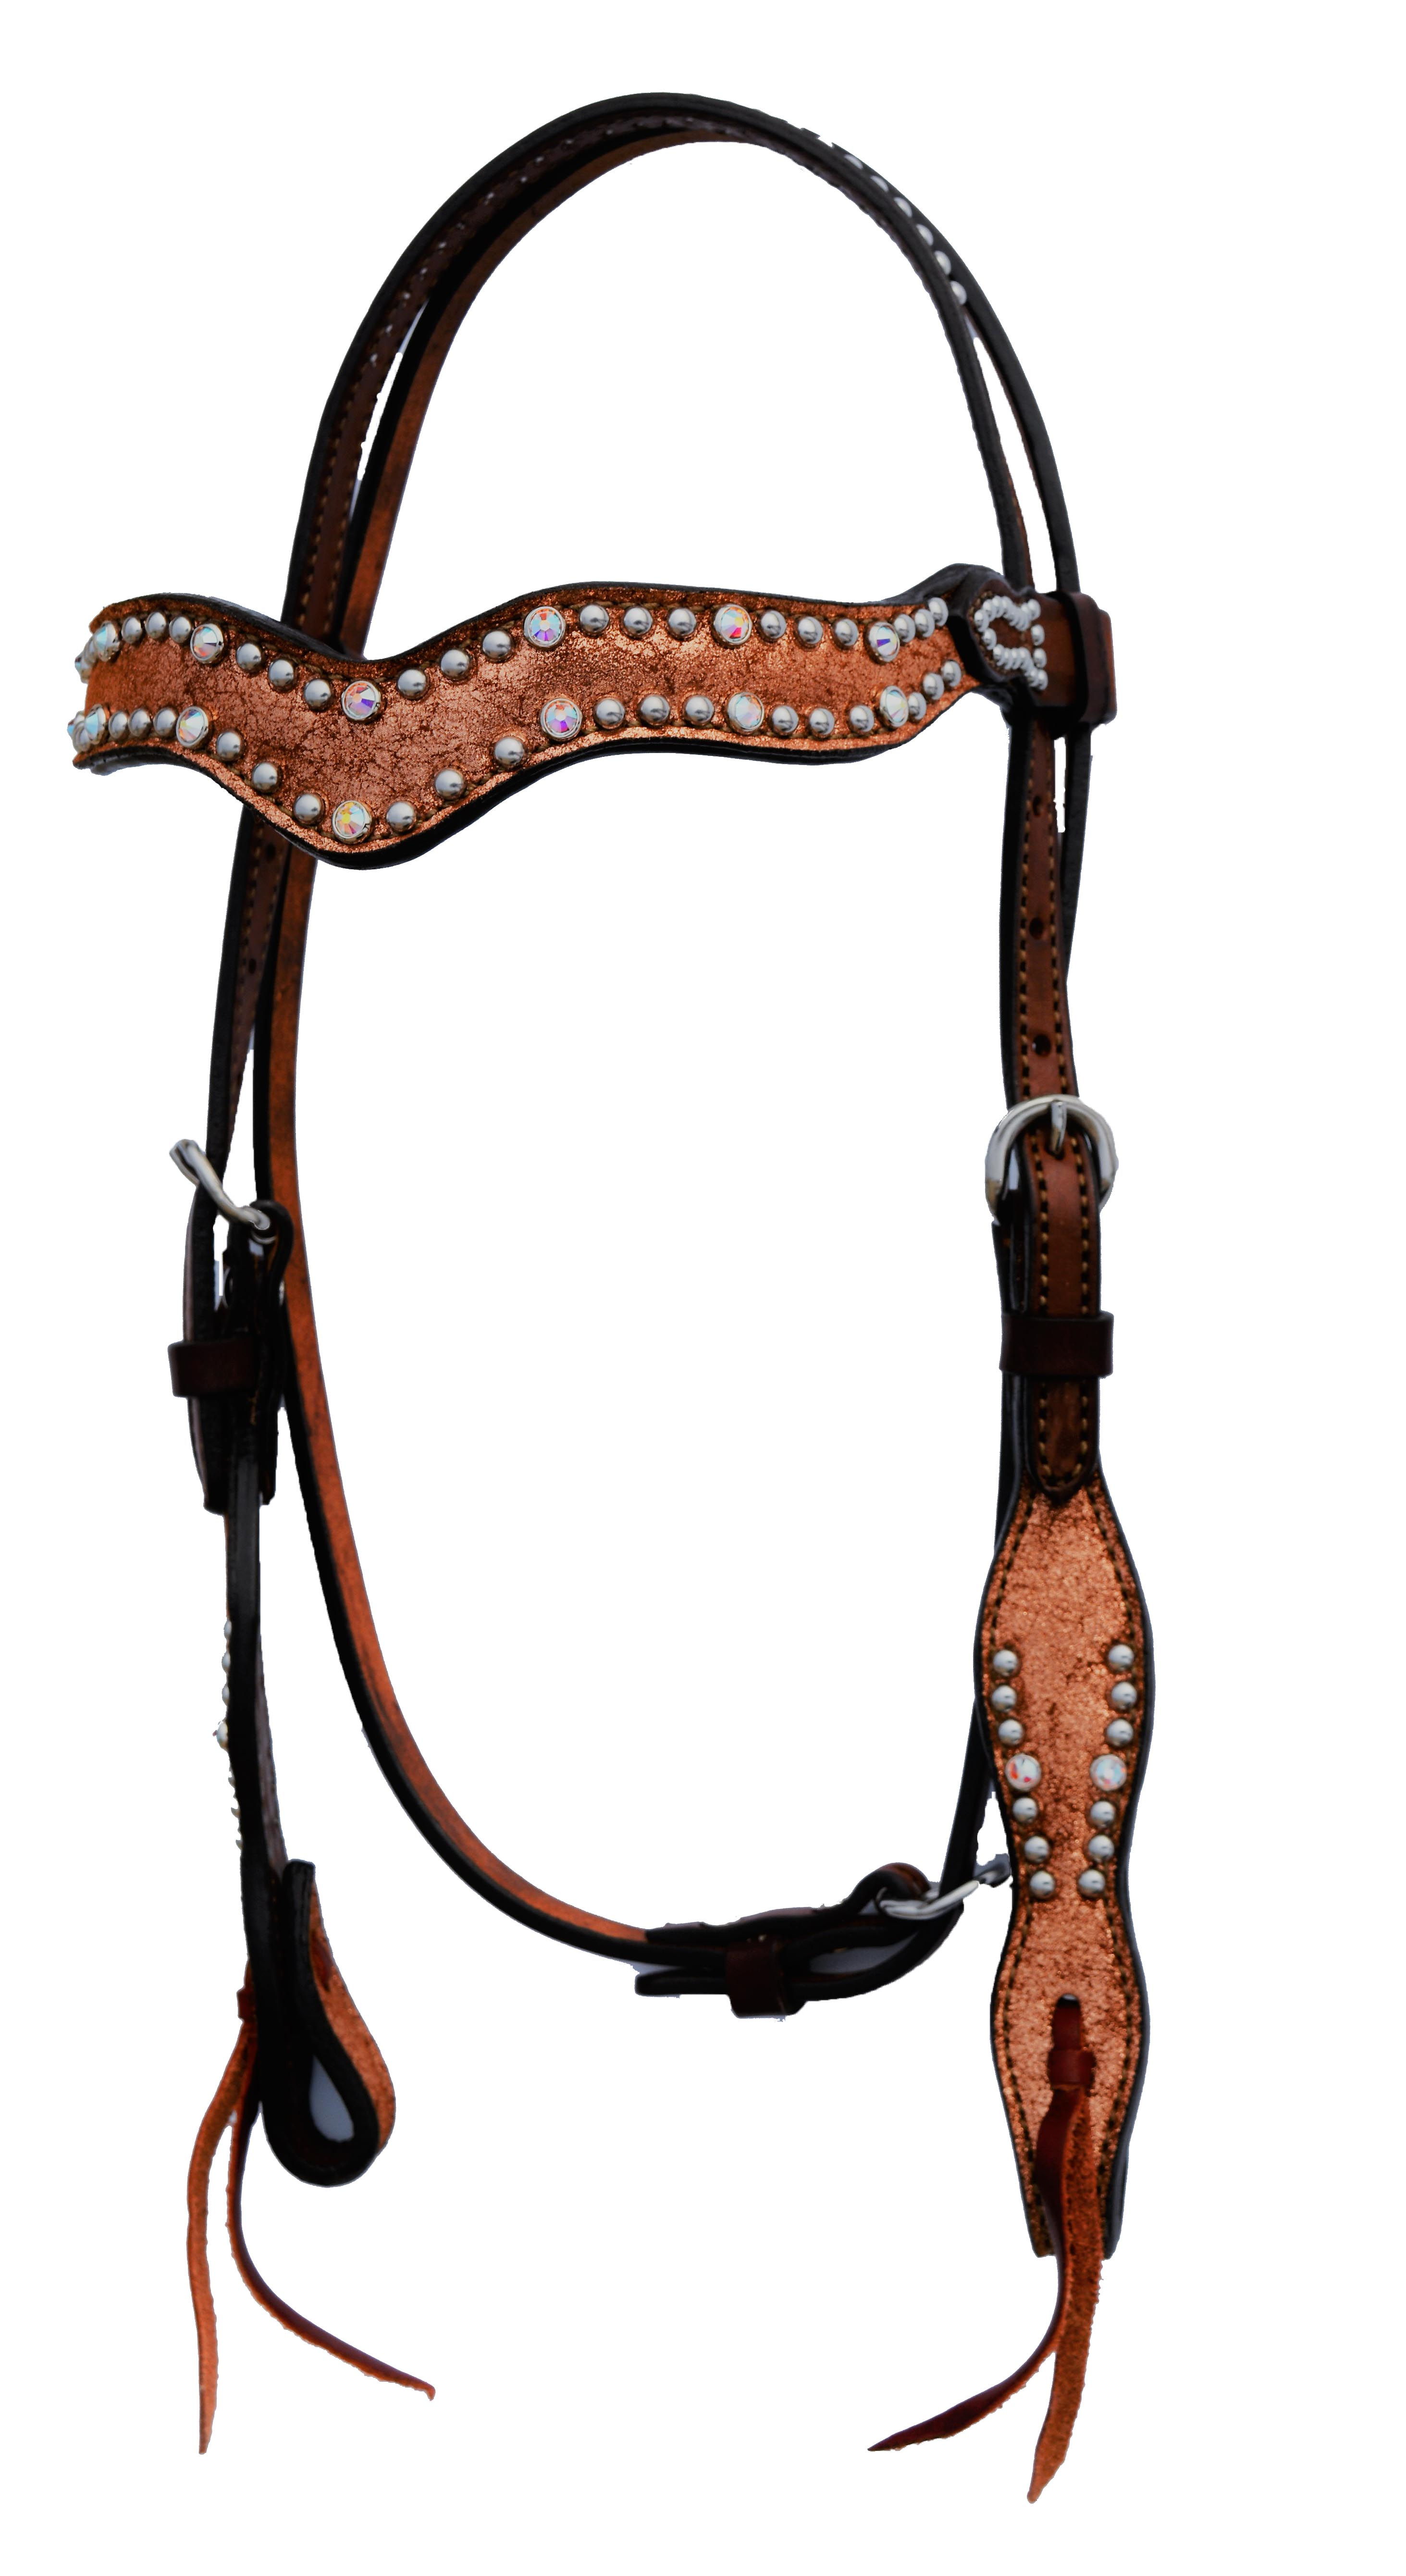 WAVE STYLE HEADSTALL WITH COPPER CRACKLE OVERLAY